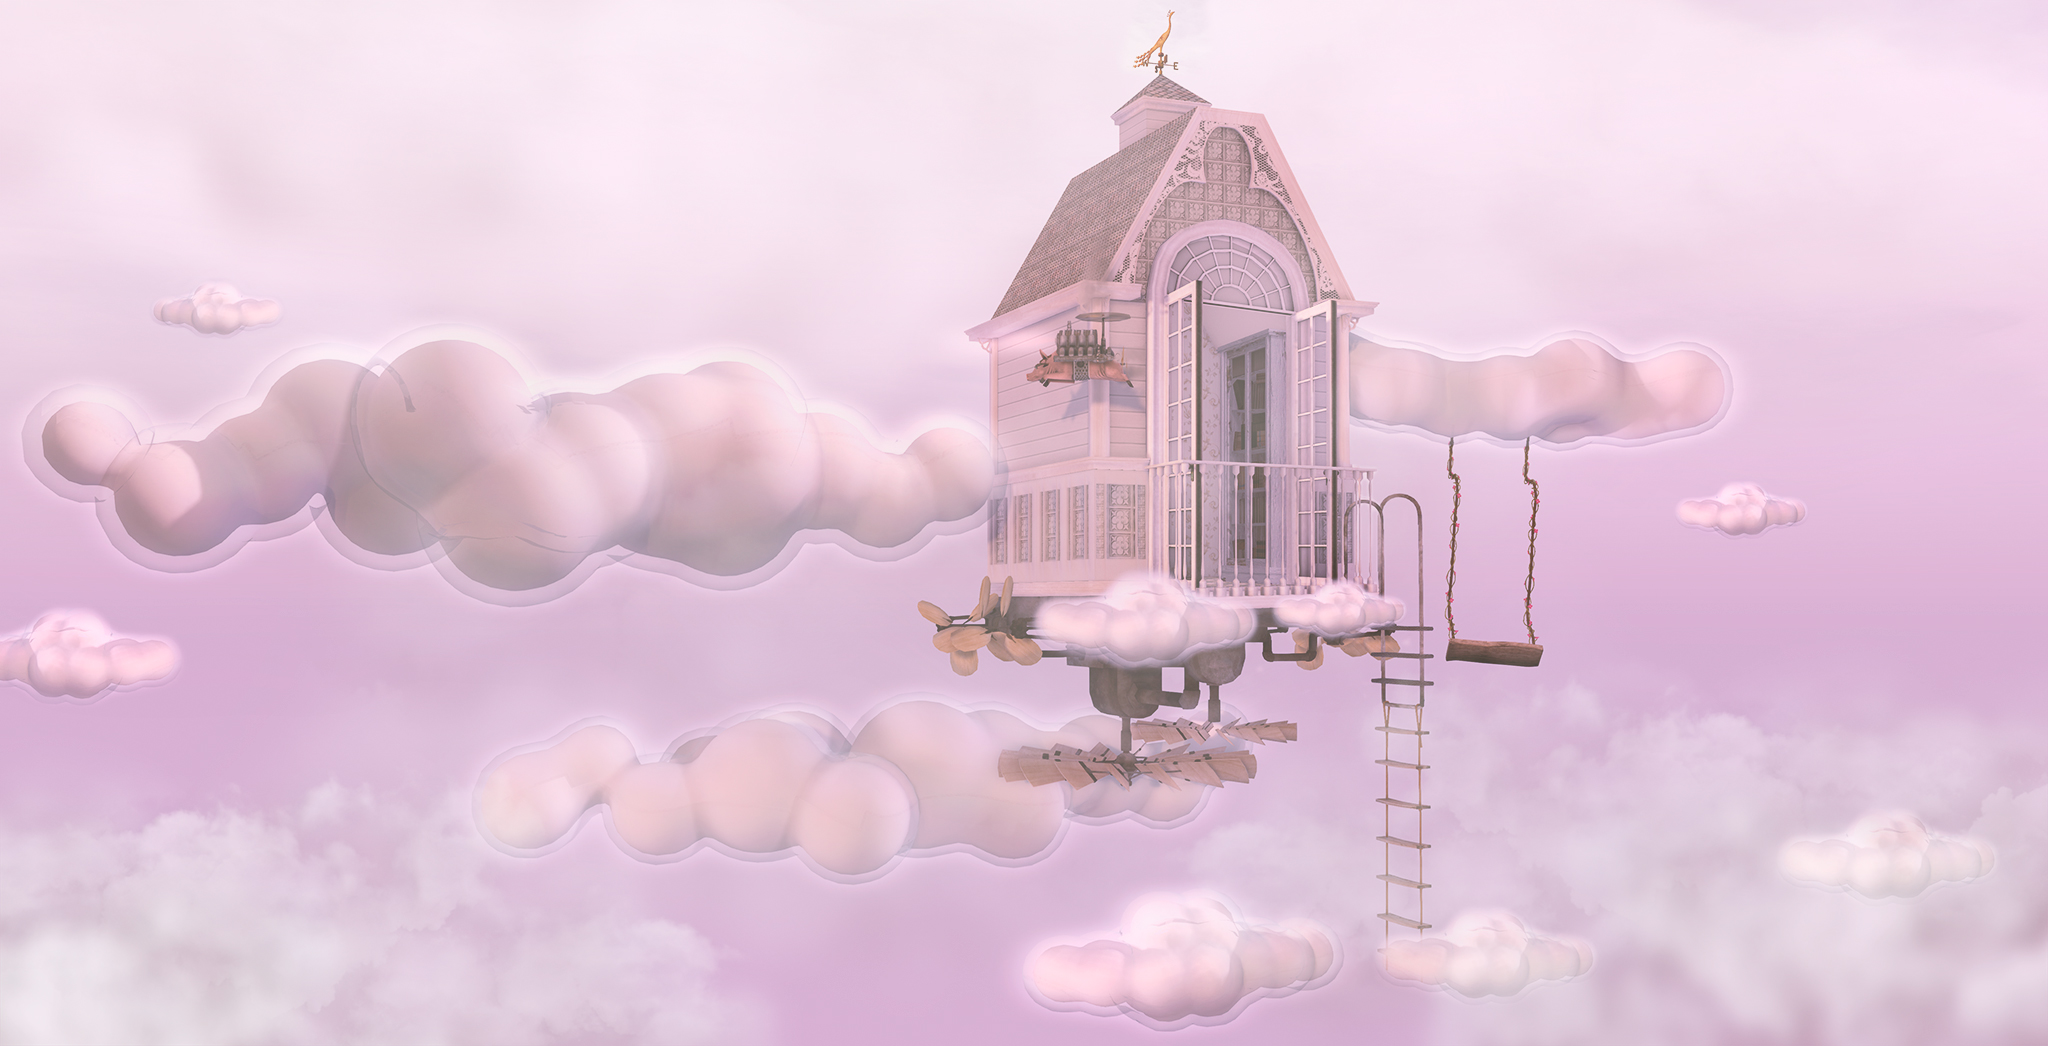 A dreamy house